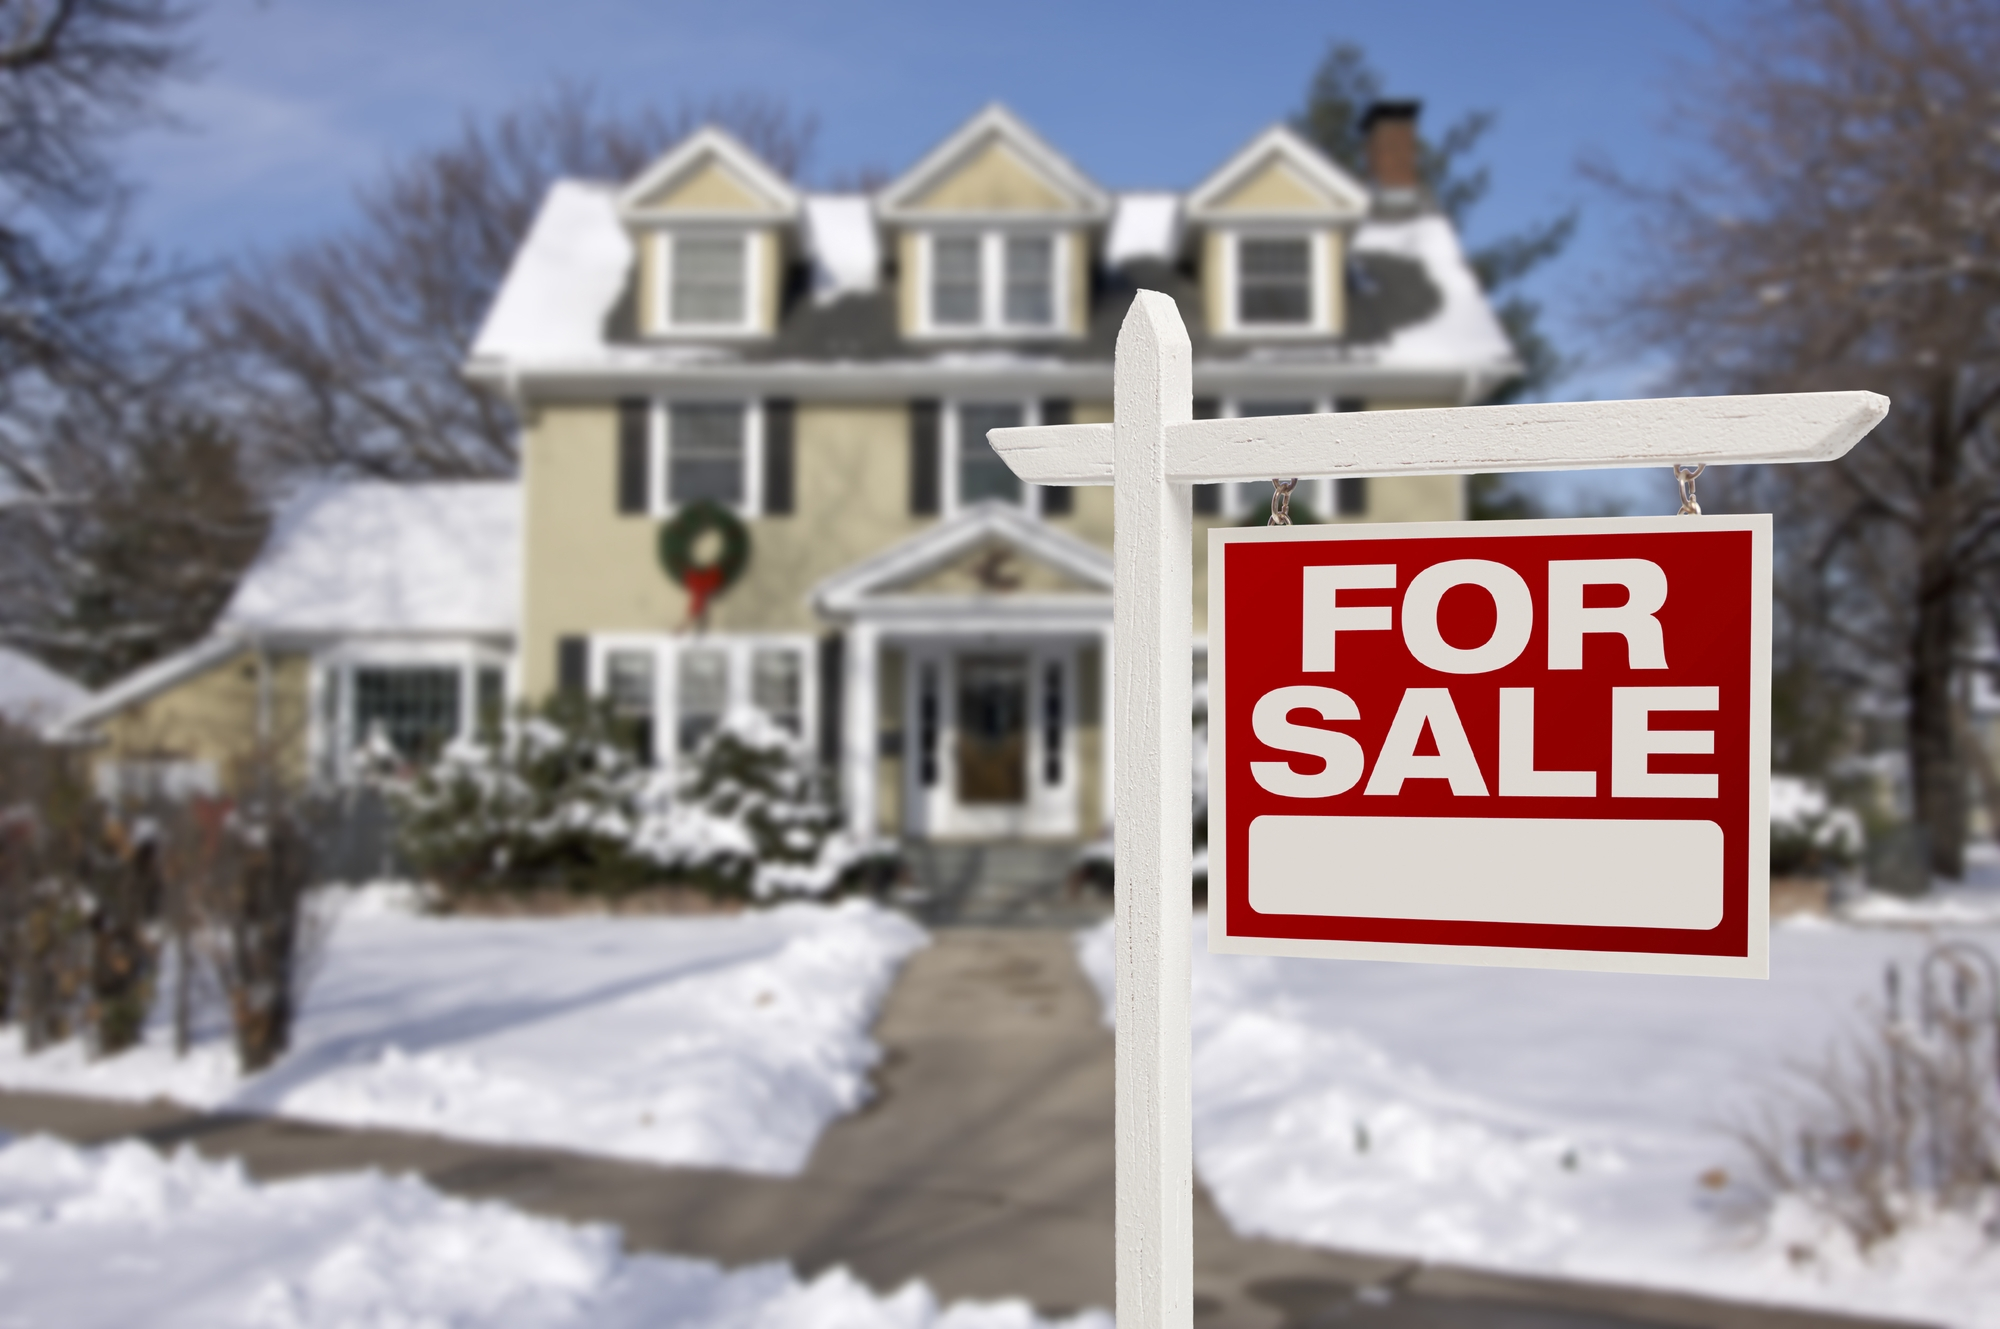 Cashing Out: How to Ensure You Sell Your Home for More Than It's Worth